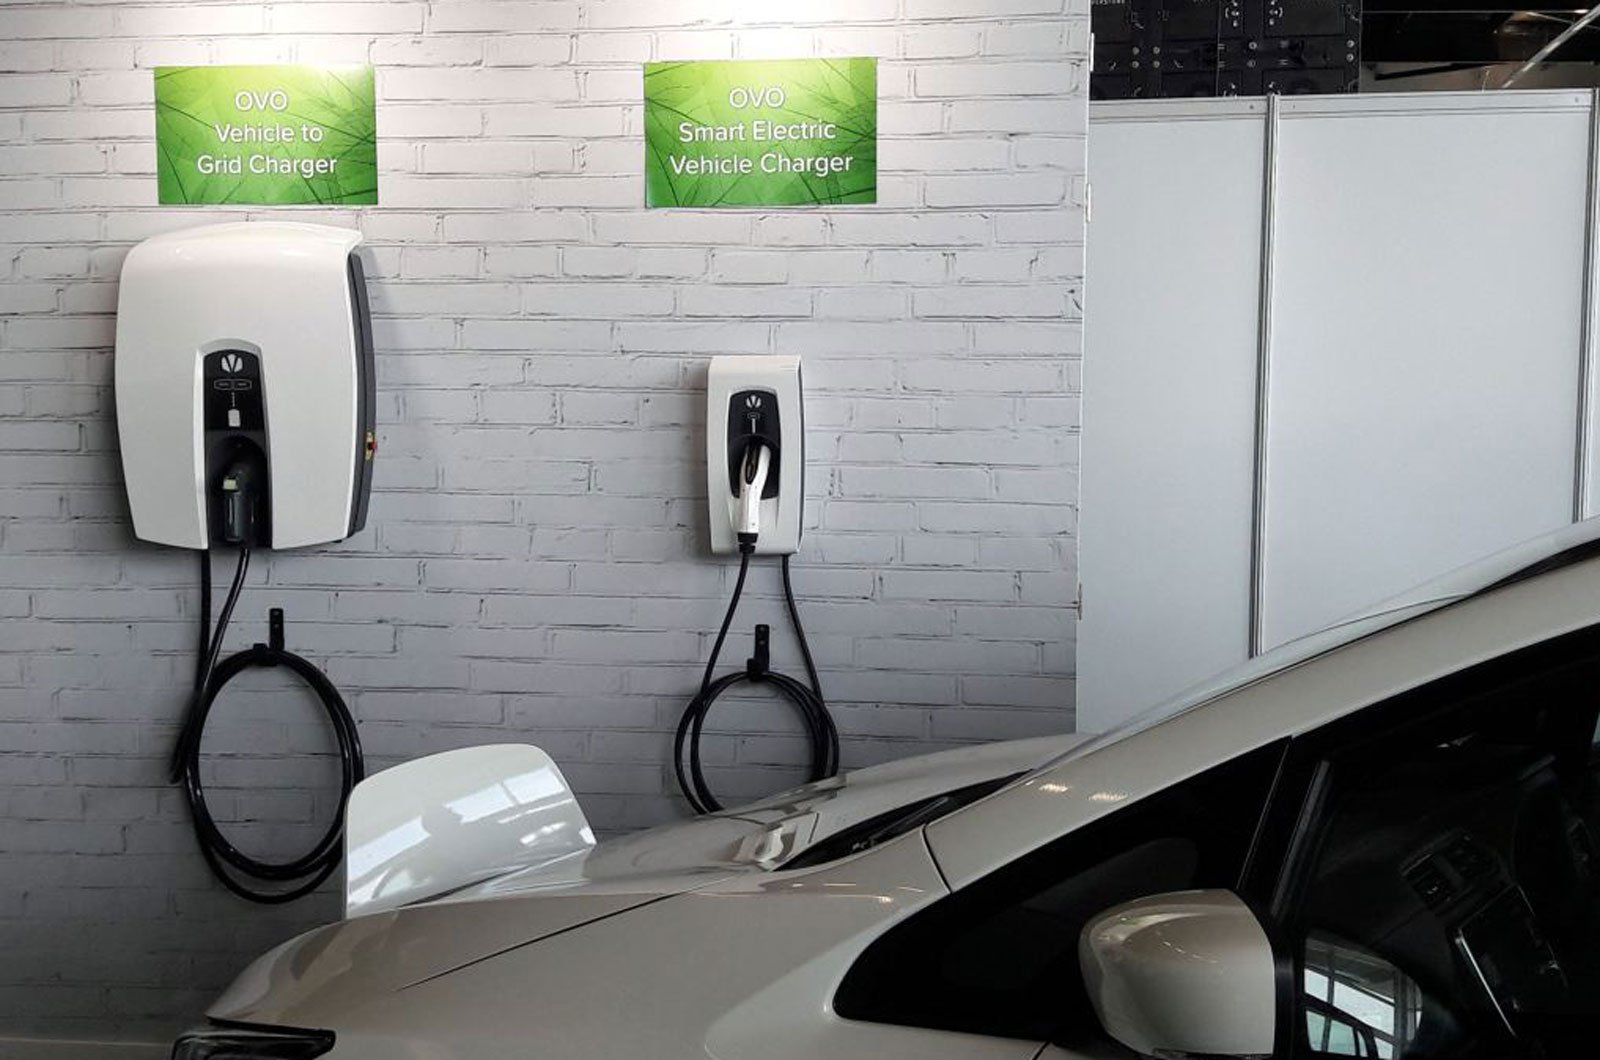 Vehicle to grid EV charger